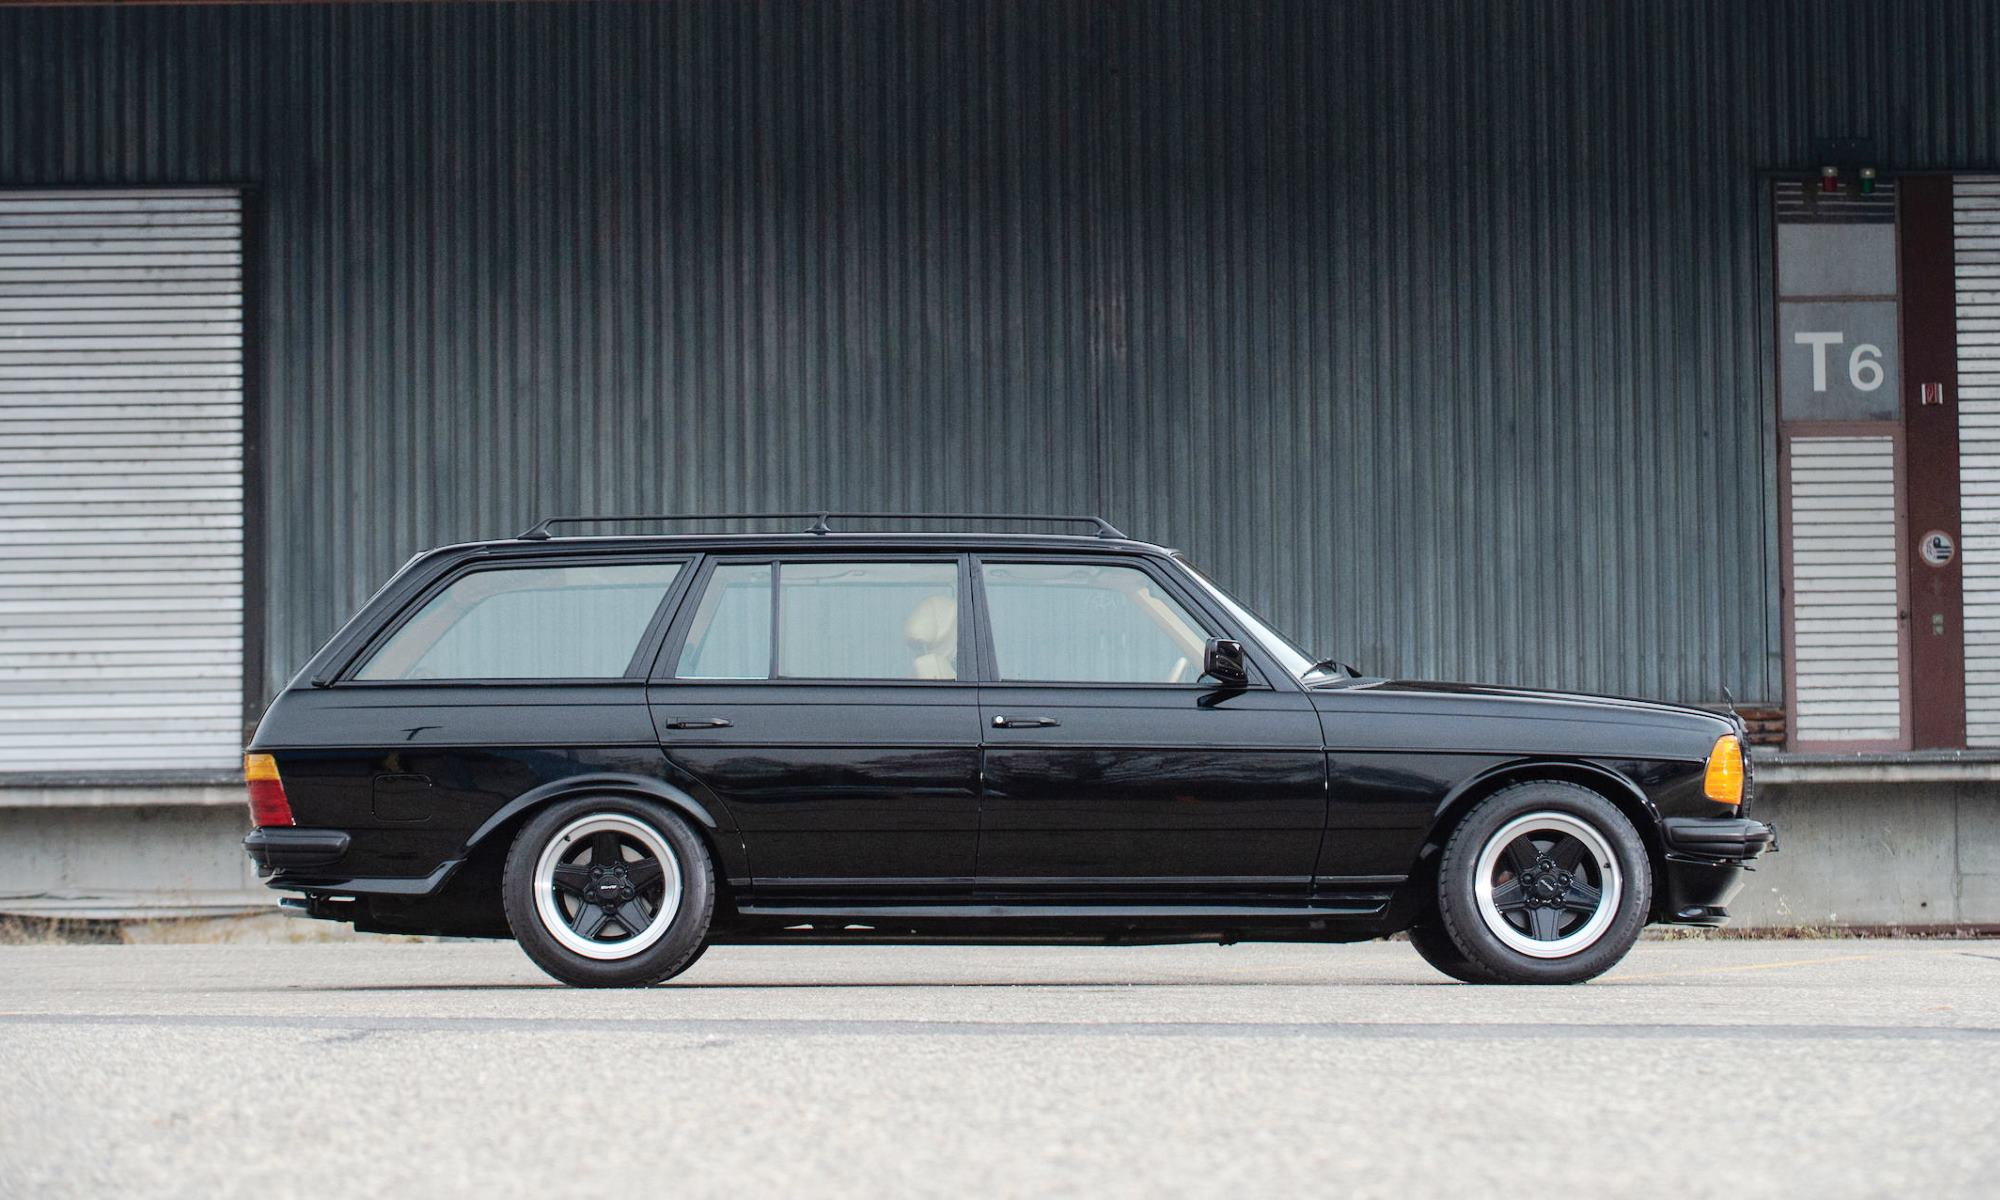 V8-powered Mercedes-Benz 500TE AMG profile